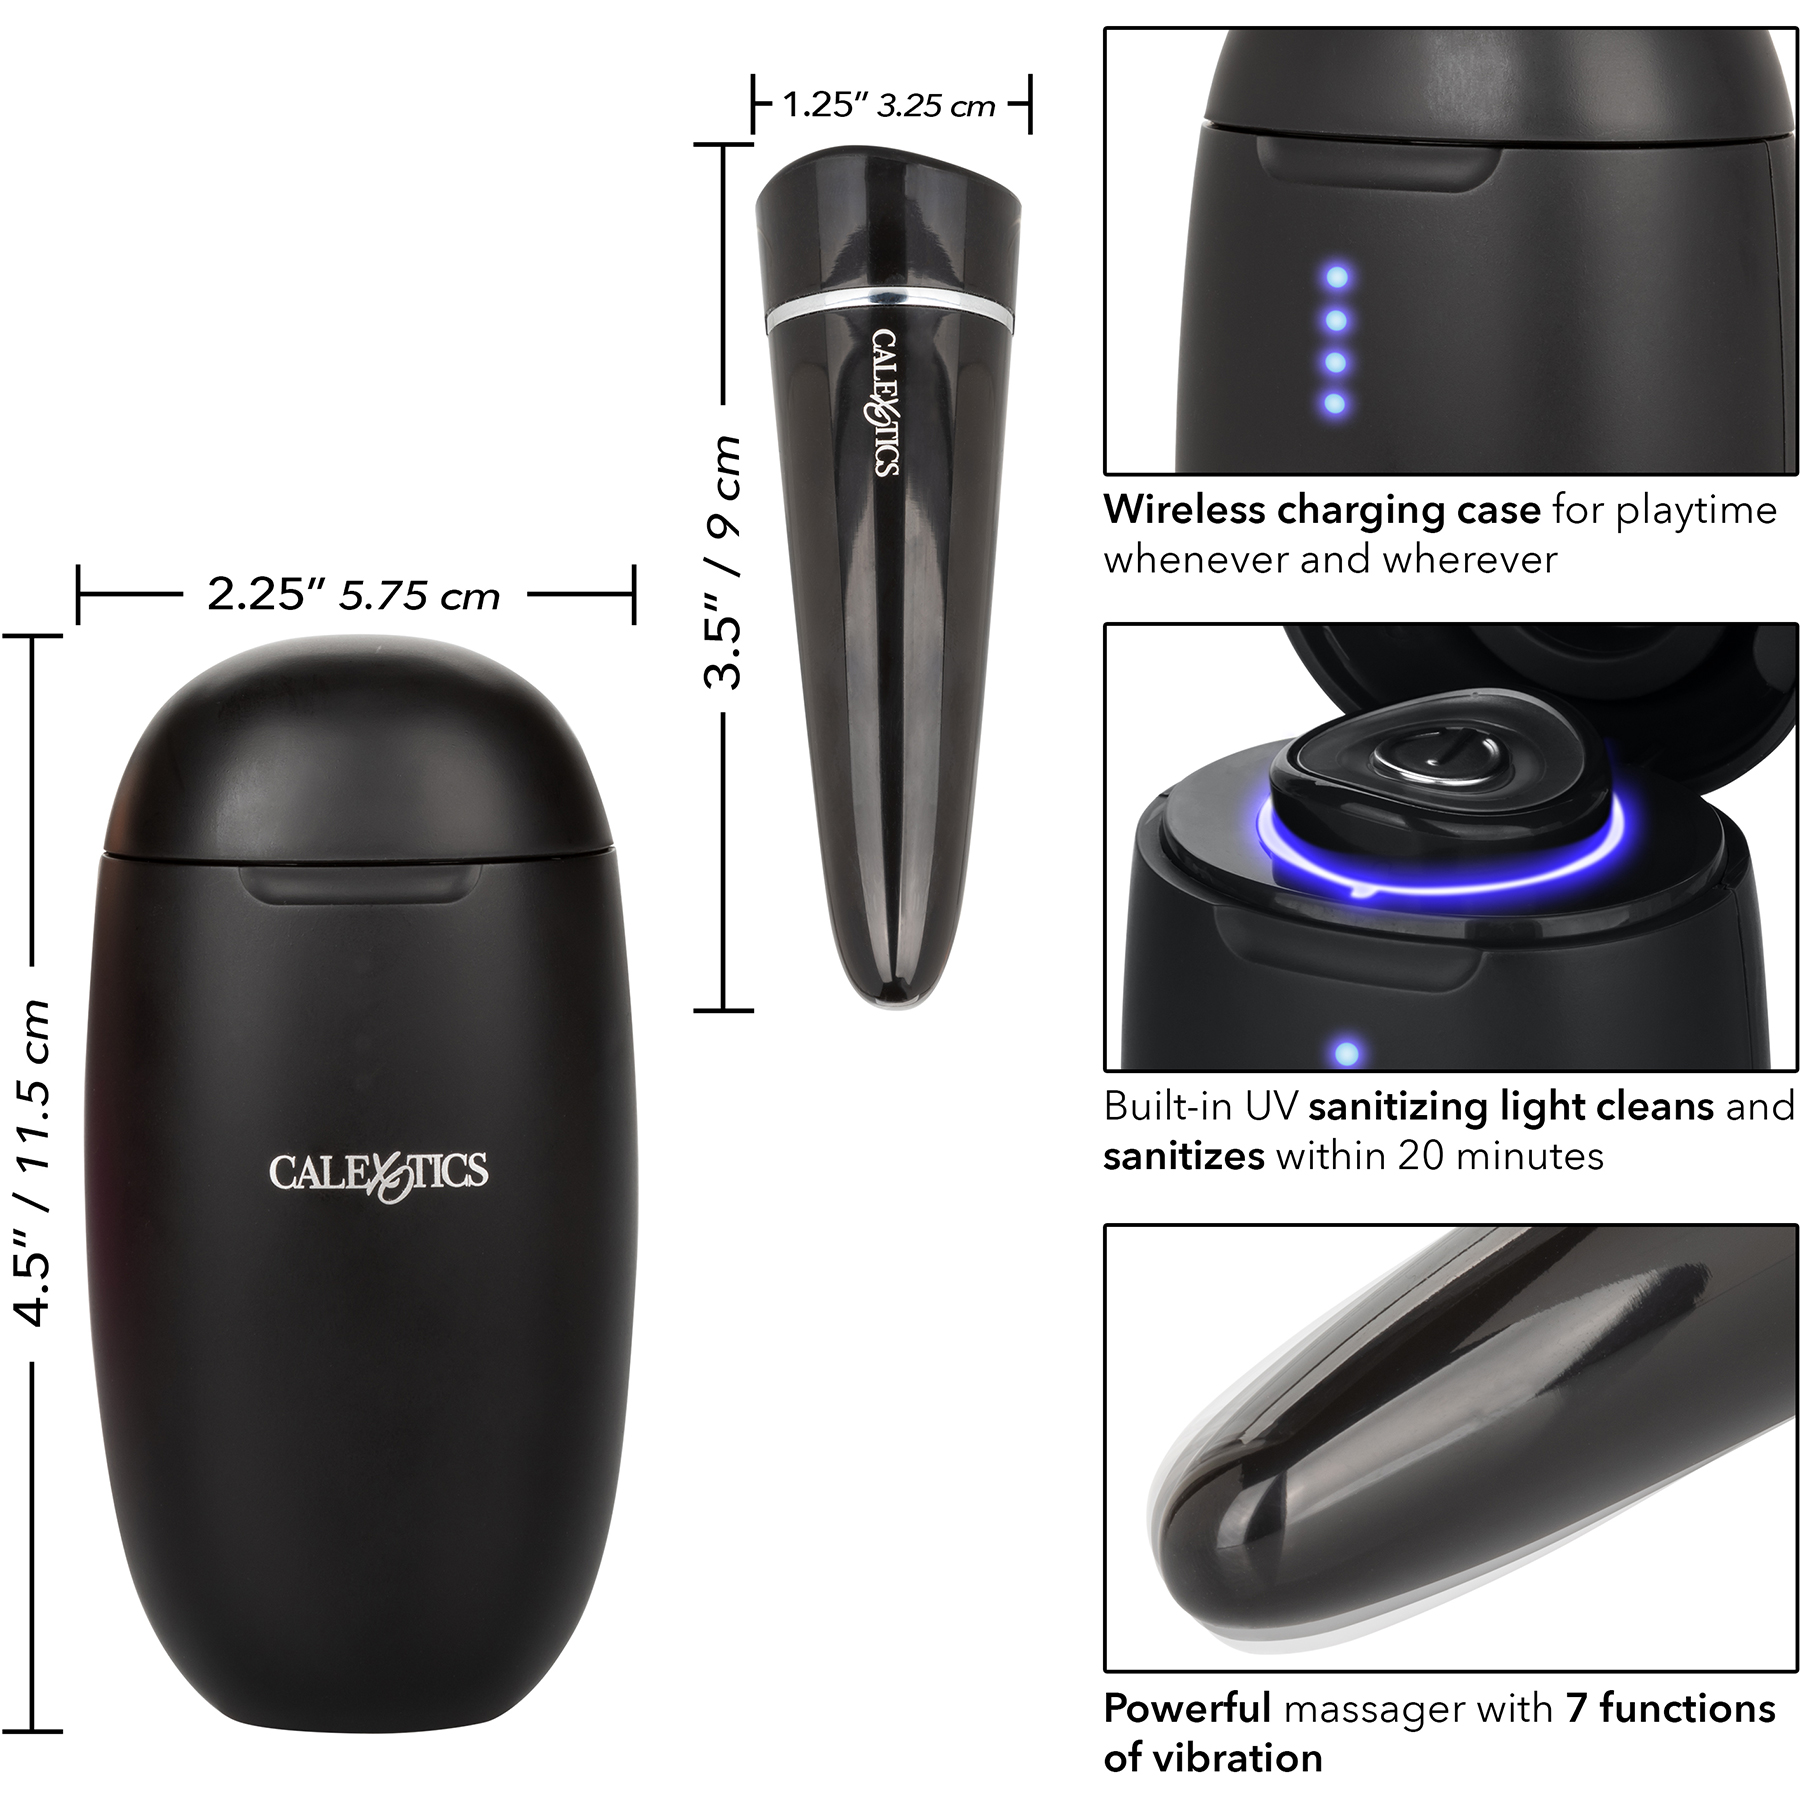 My Pod Rechargeable Bullet Vibrator With UV Sanitizing Charger - Measurements